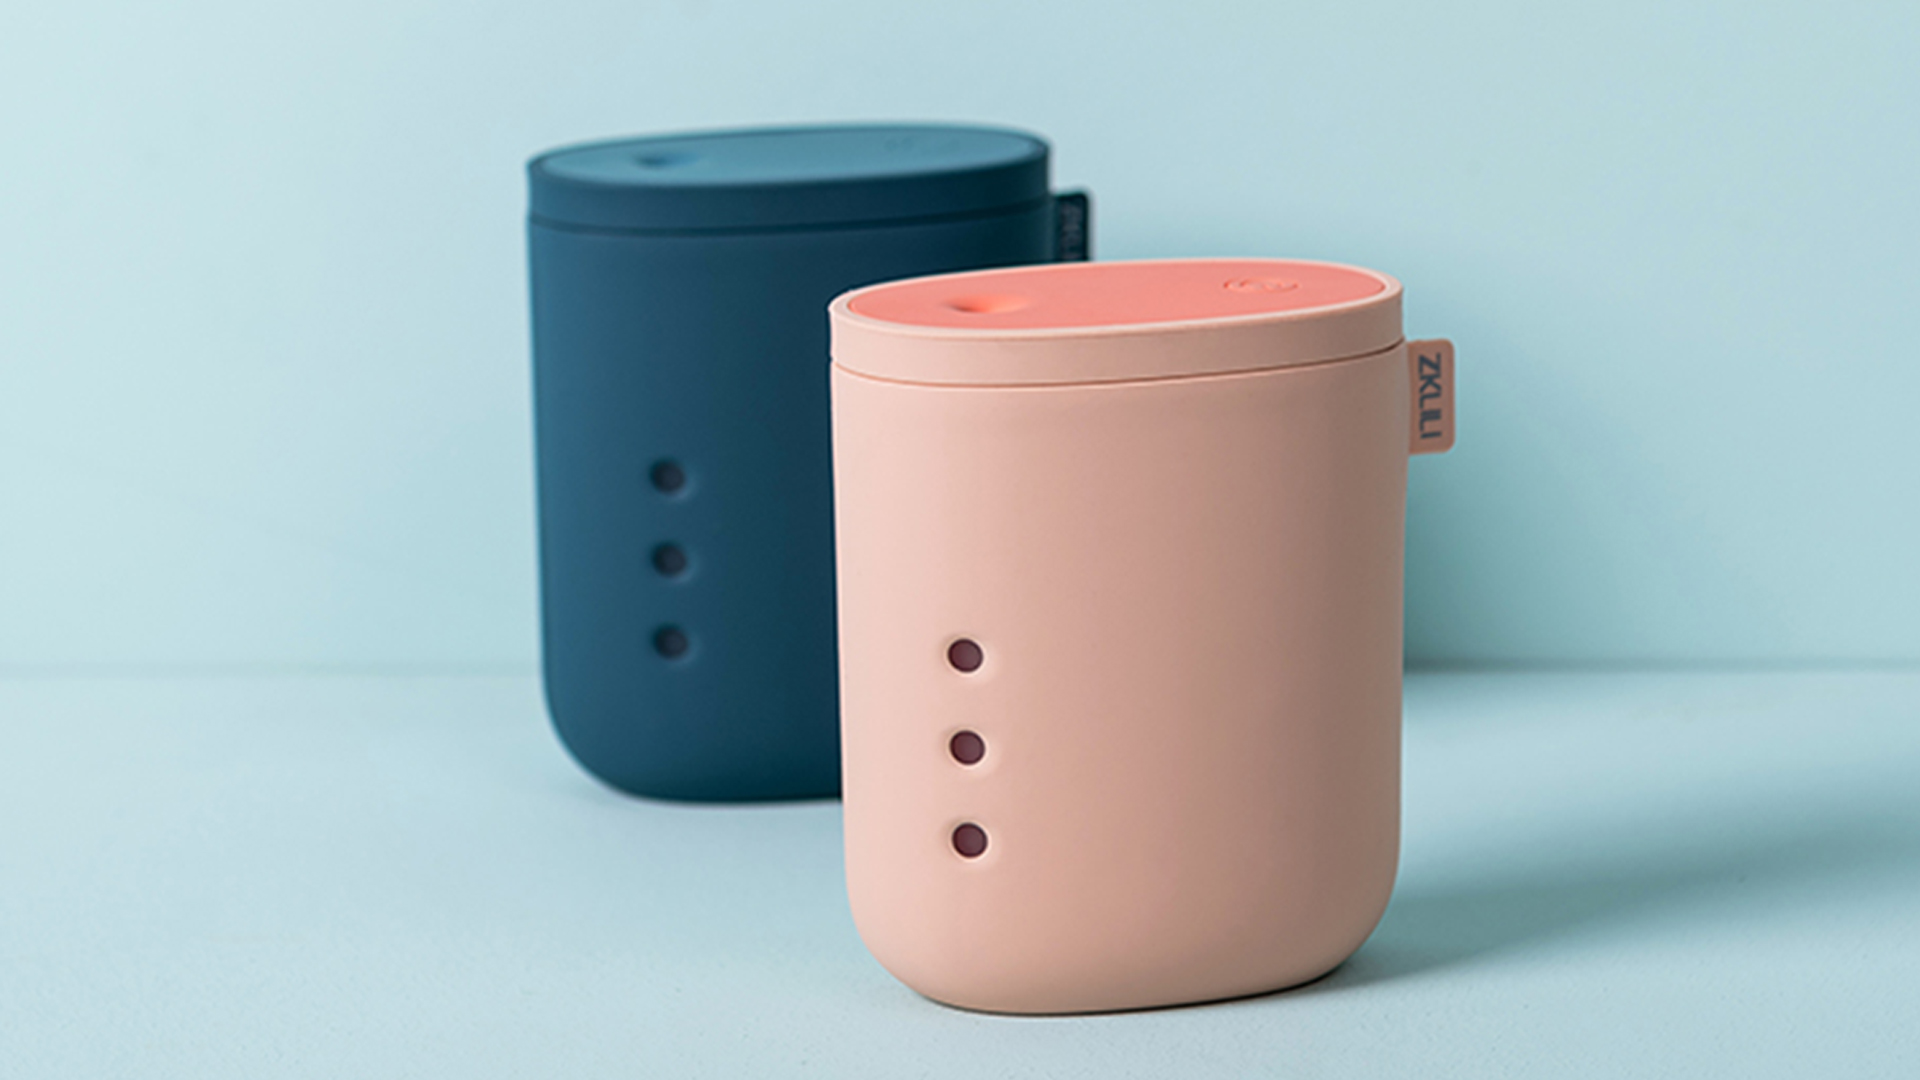 Simple Life Humidifier 6 - Sneapy